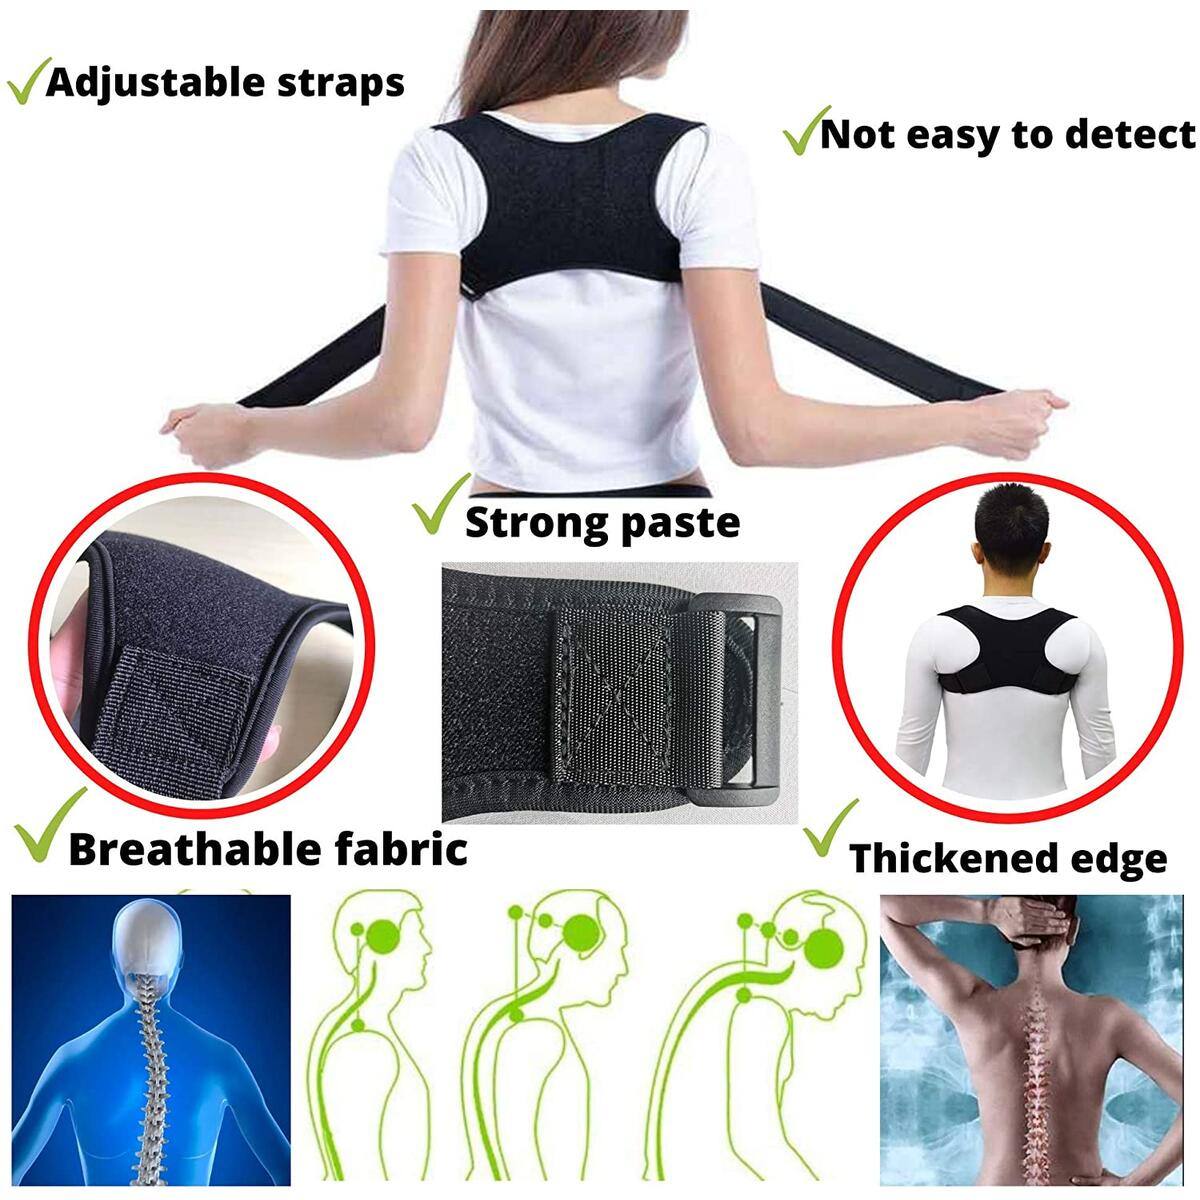 Back Posture Corrector for Women, Men. Adjustable Upper Back Straightener Clavicle Support and Providing Pain Relief from Neck. 5 Items Pack Неаd Наммоk fоr Nесk Раin, Eye Mask, Ear Plugs, Carry Bag